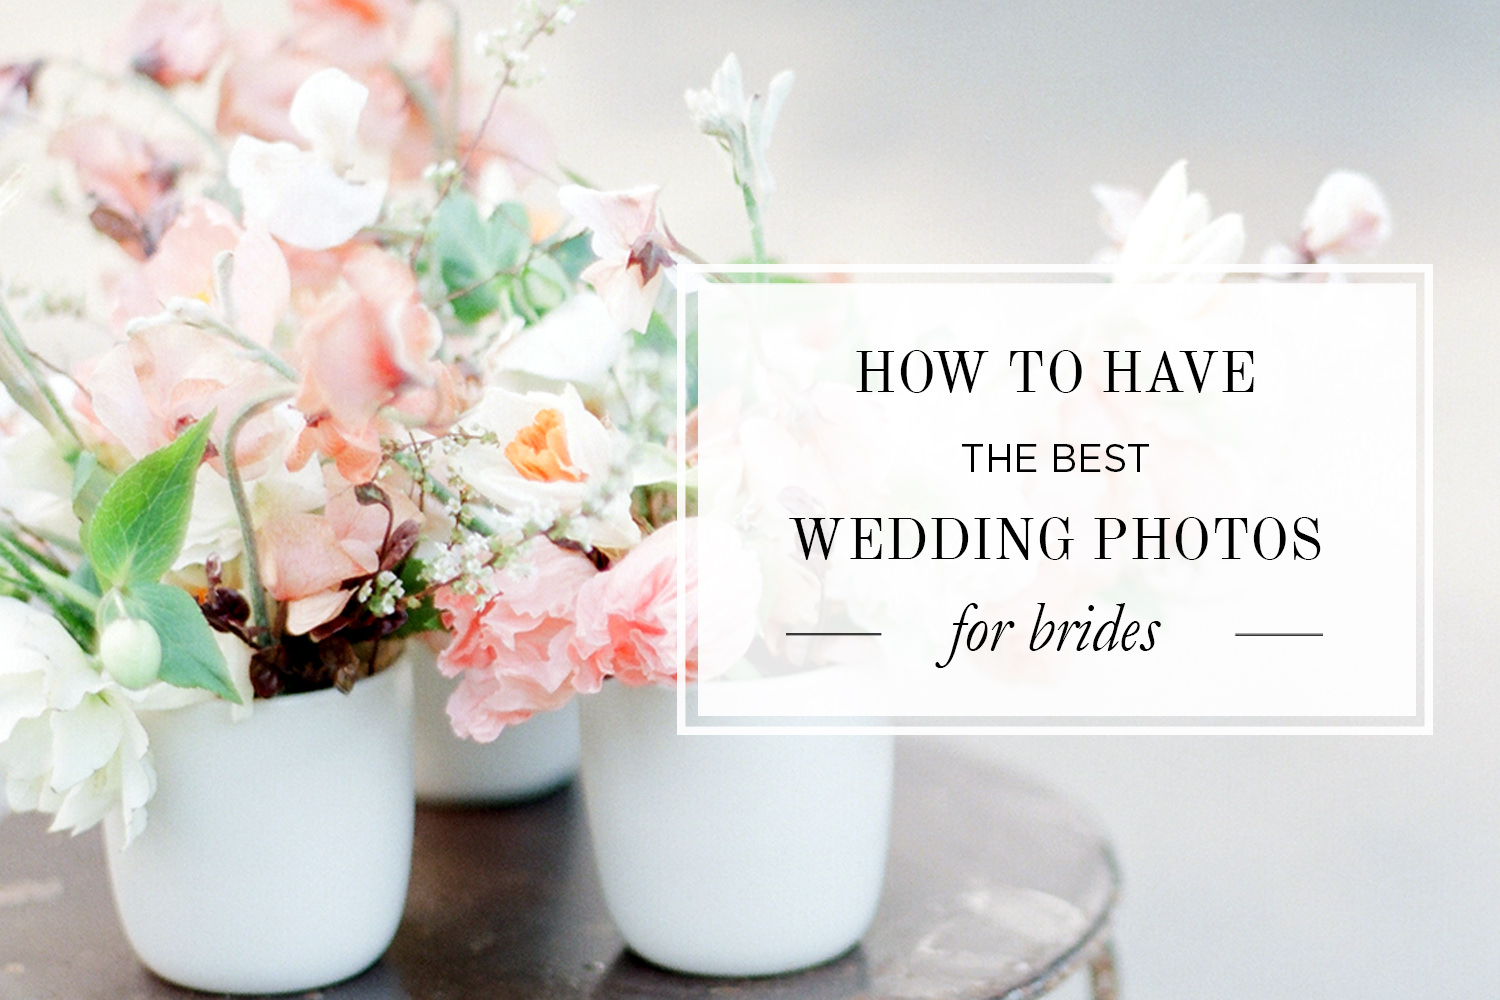 How to Have the Best Wedding Photos: The Number One Method